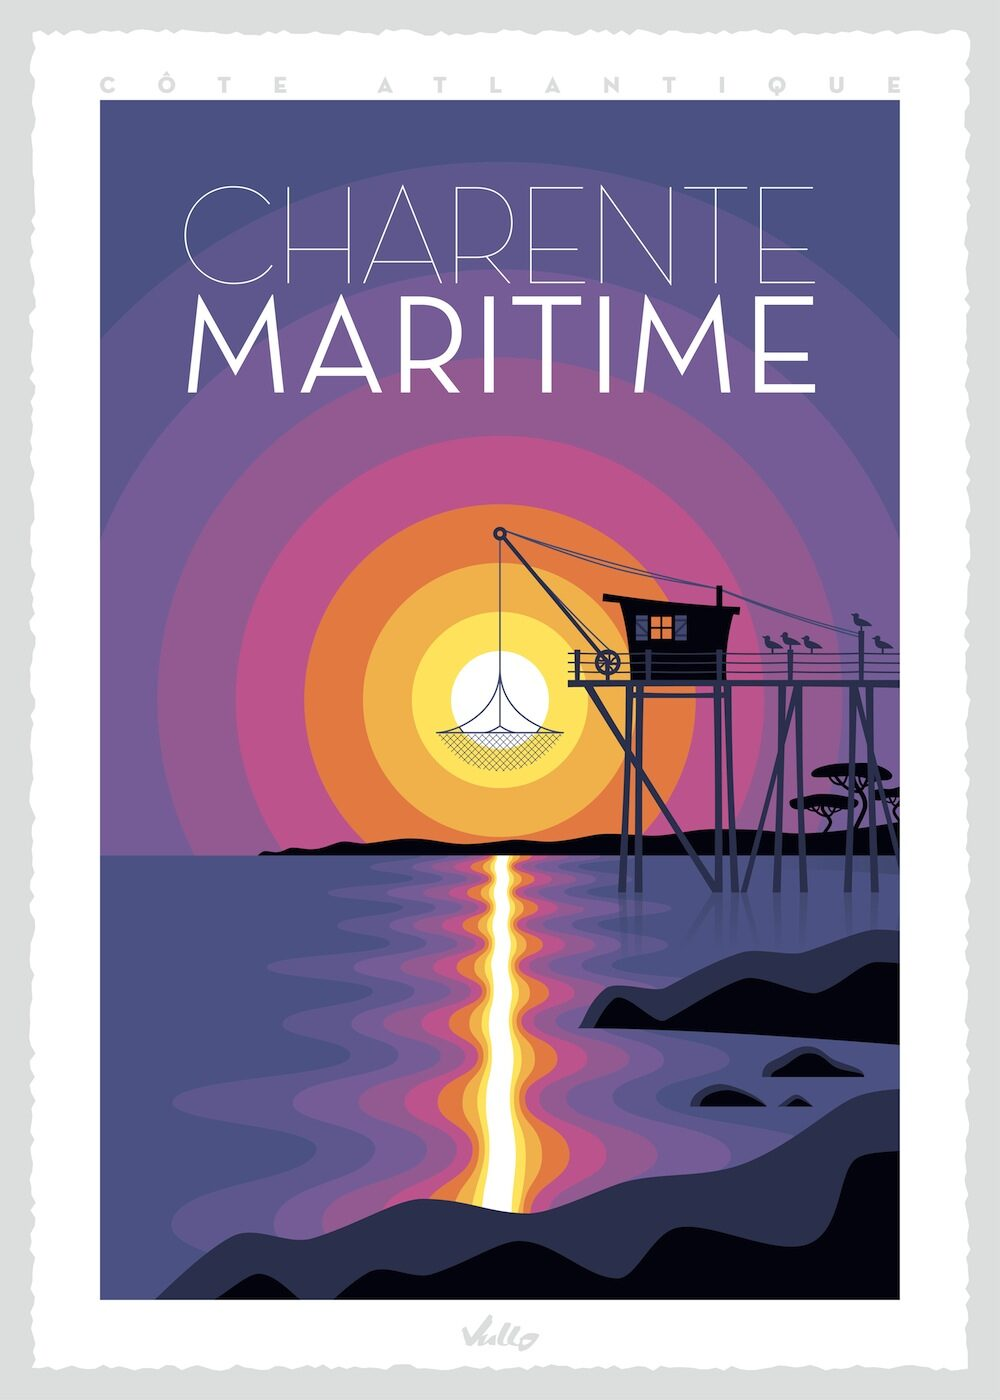 Charente-Maritime poster